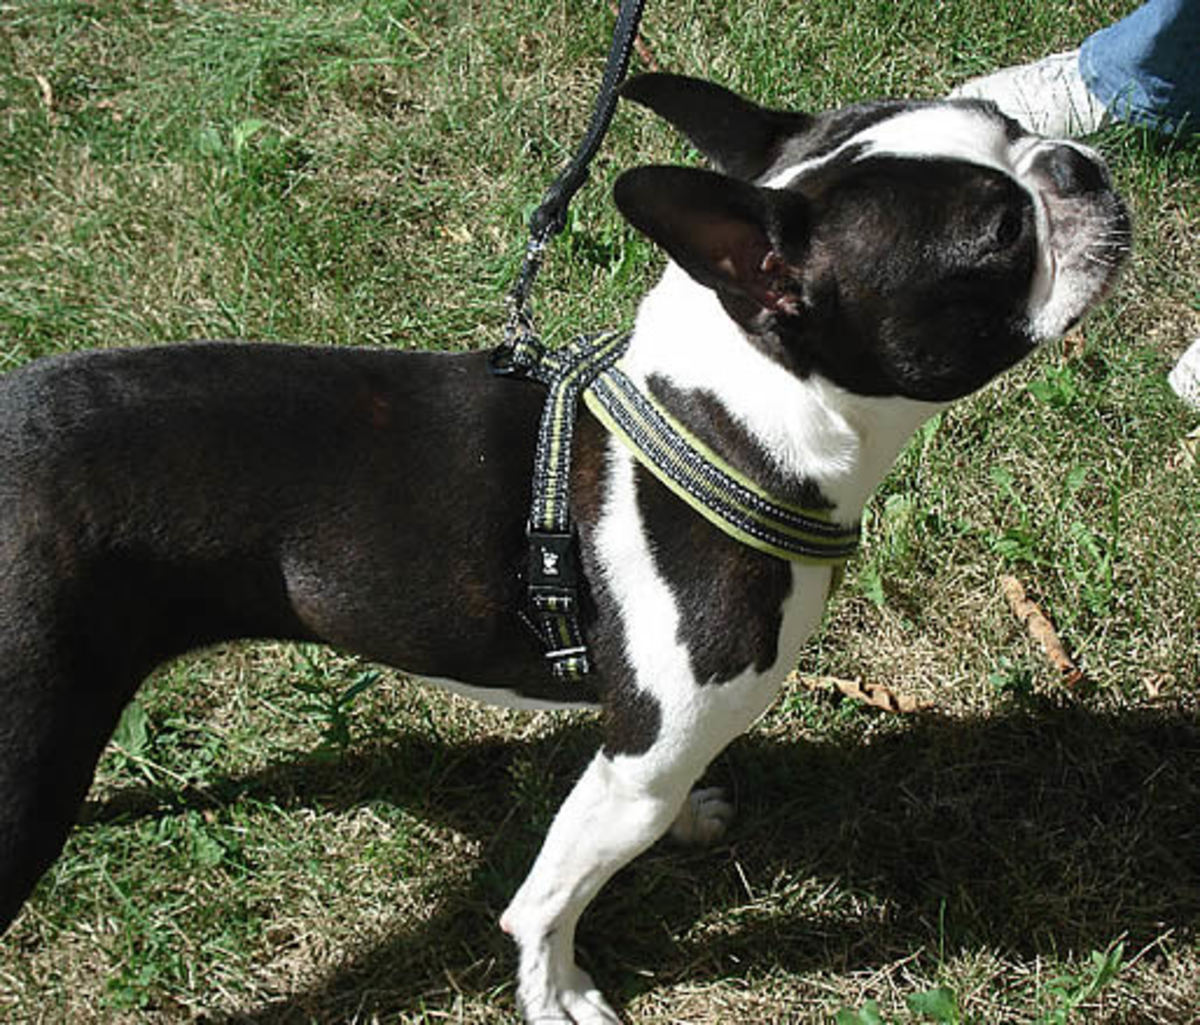 Booker (Boston Terrier) shows off the Padded Y-Harness from Hurtta.